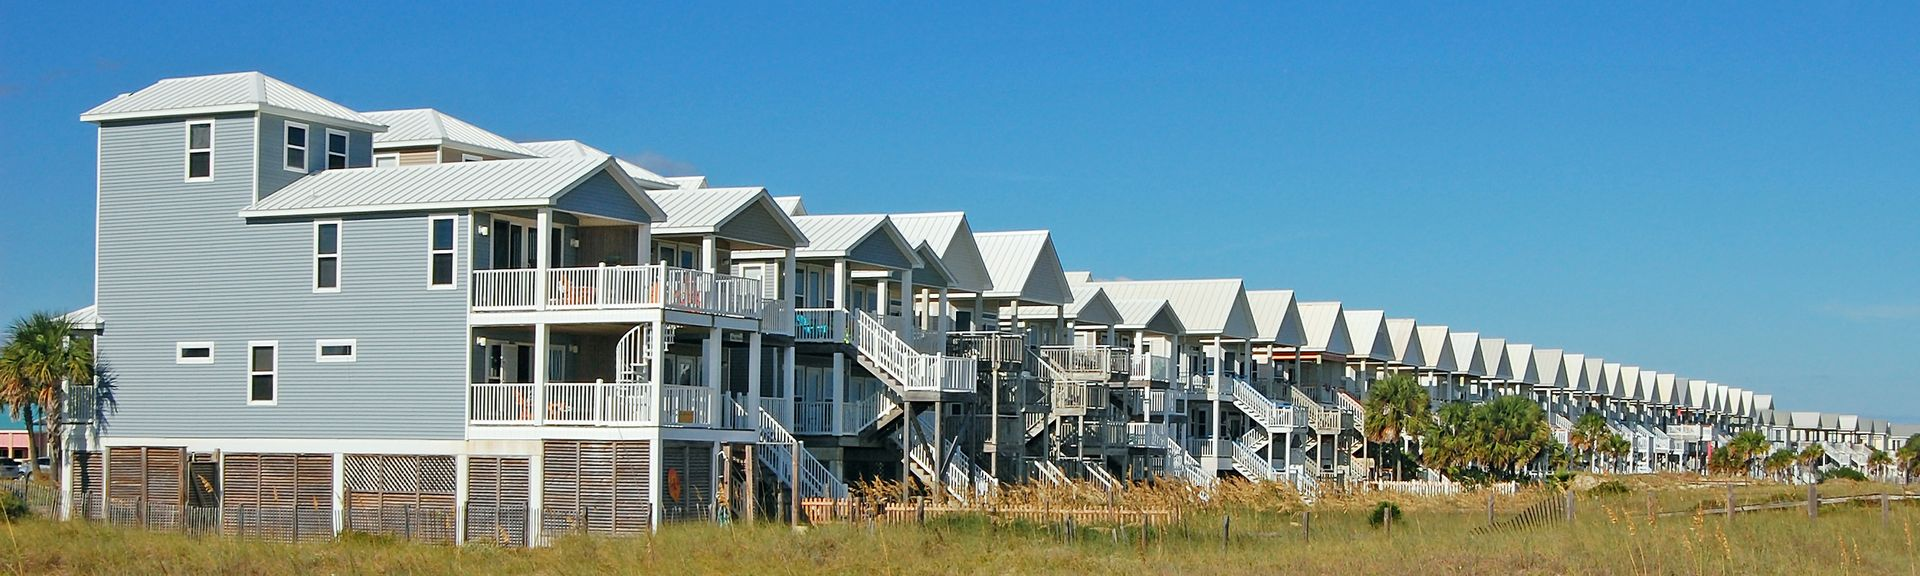 St George Island Fl Vacation Rentals House Rentals More Vrbo,Smart Home Technology Trends